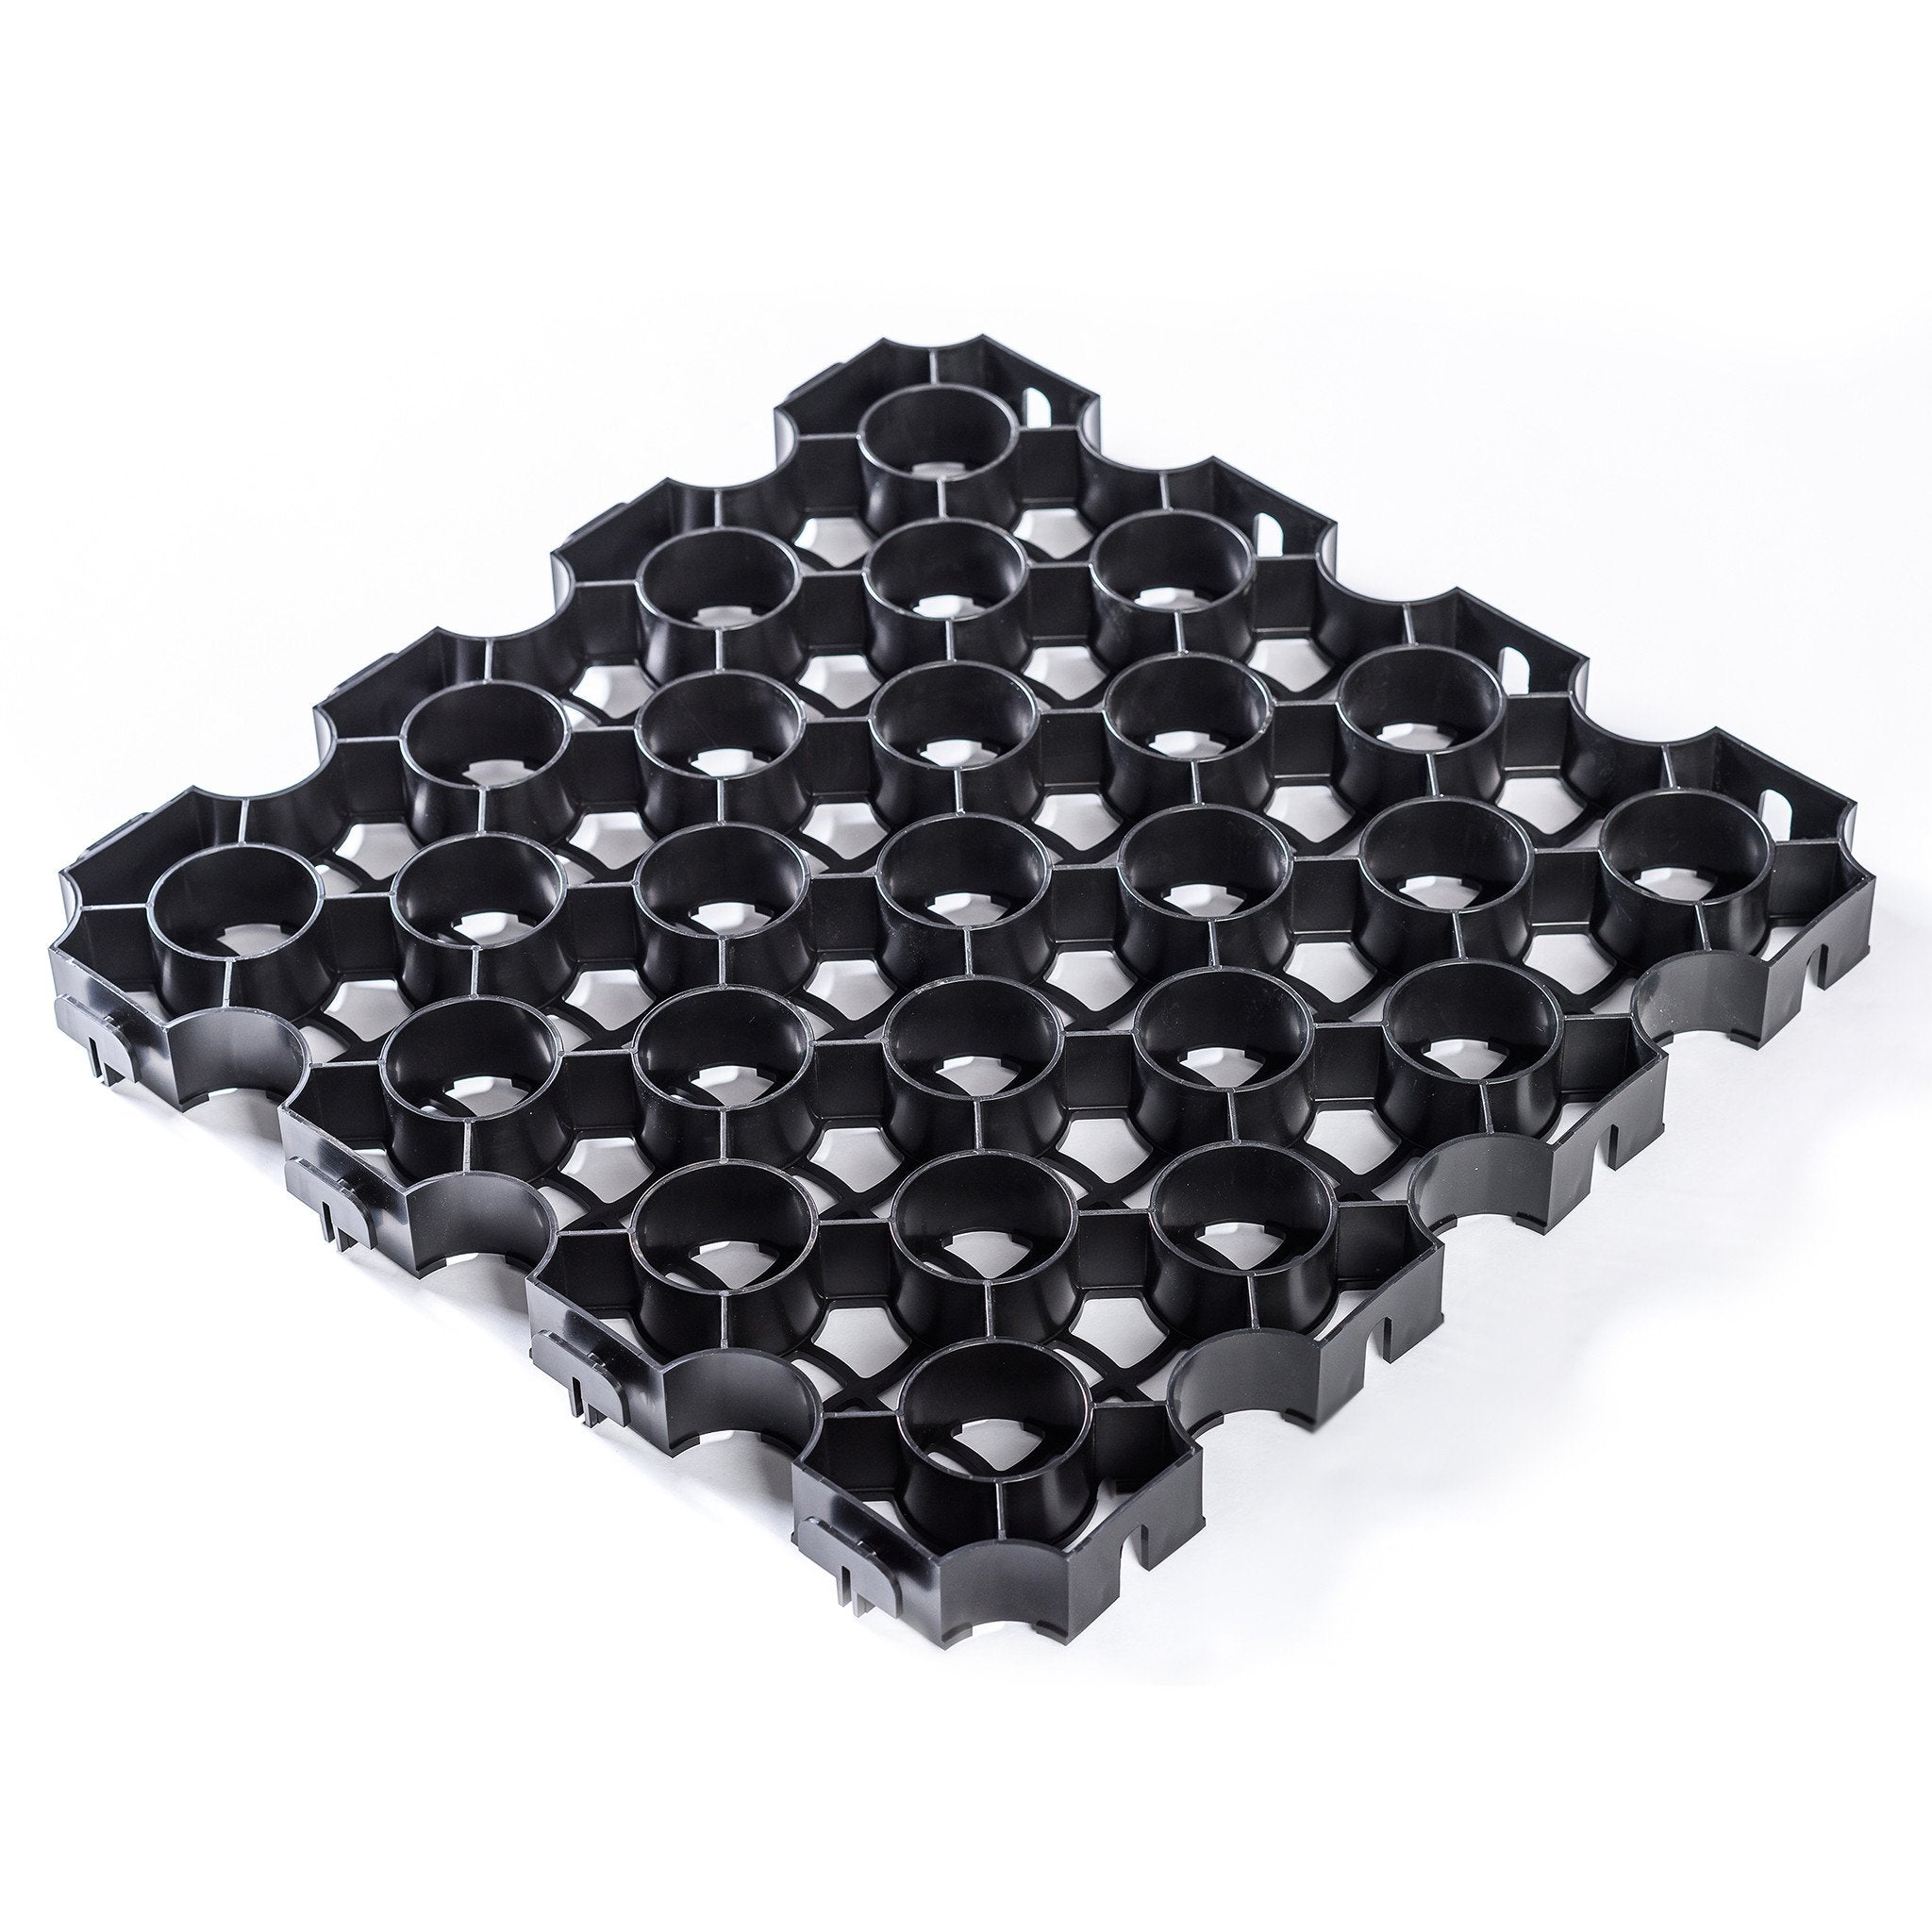 Durapath Ground Reinforcement (Black) - Durable and Robust Solution